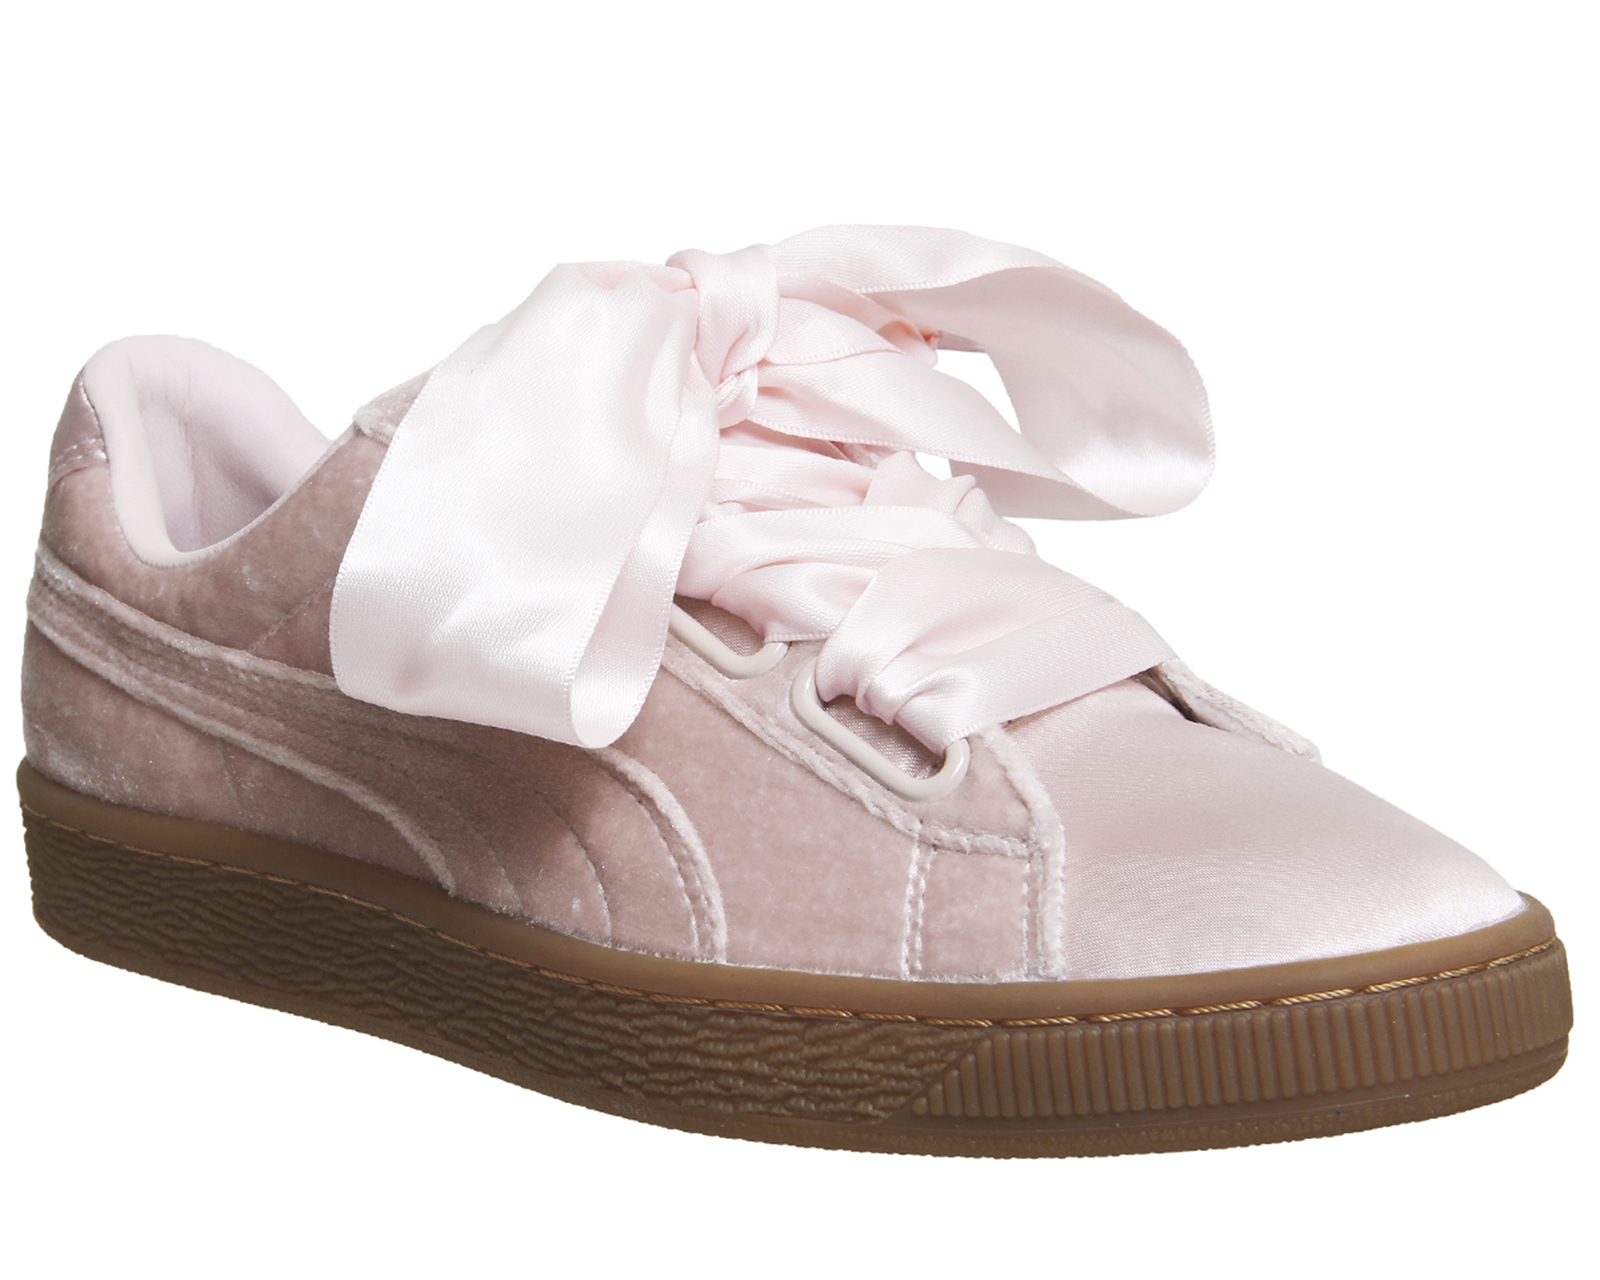 50852111d24 Sentinel Womens Puma Basket Heart Trainers Silver Pink Gum Trainers Shoes